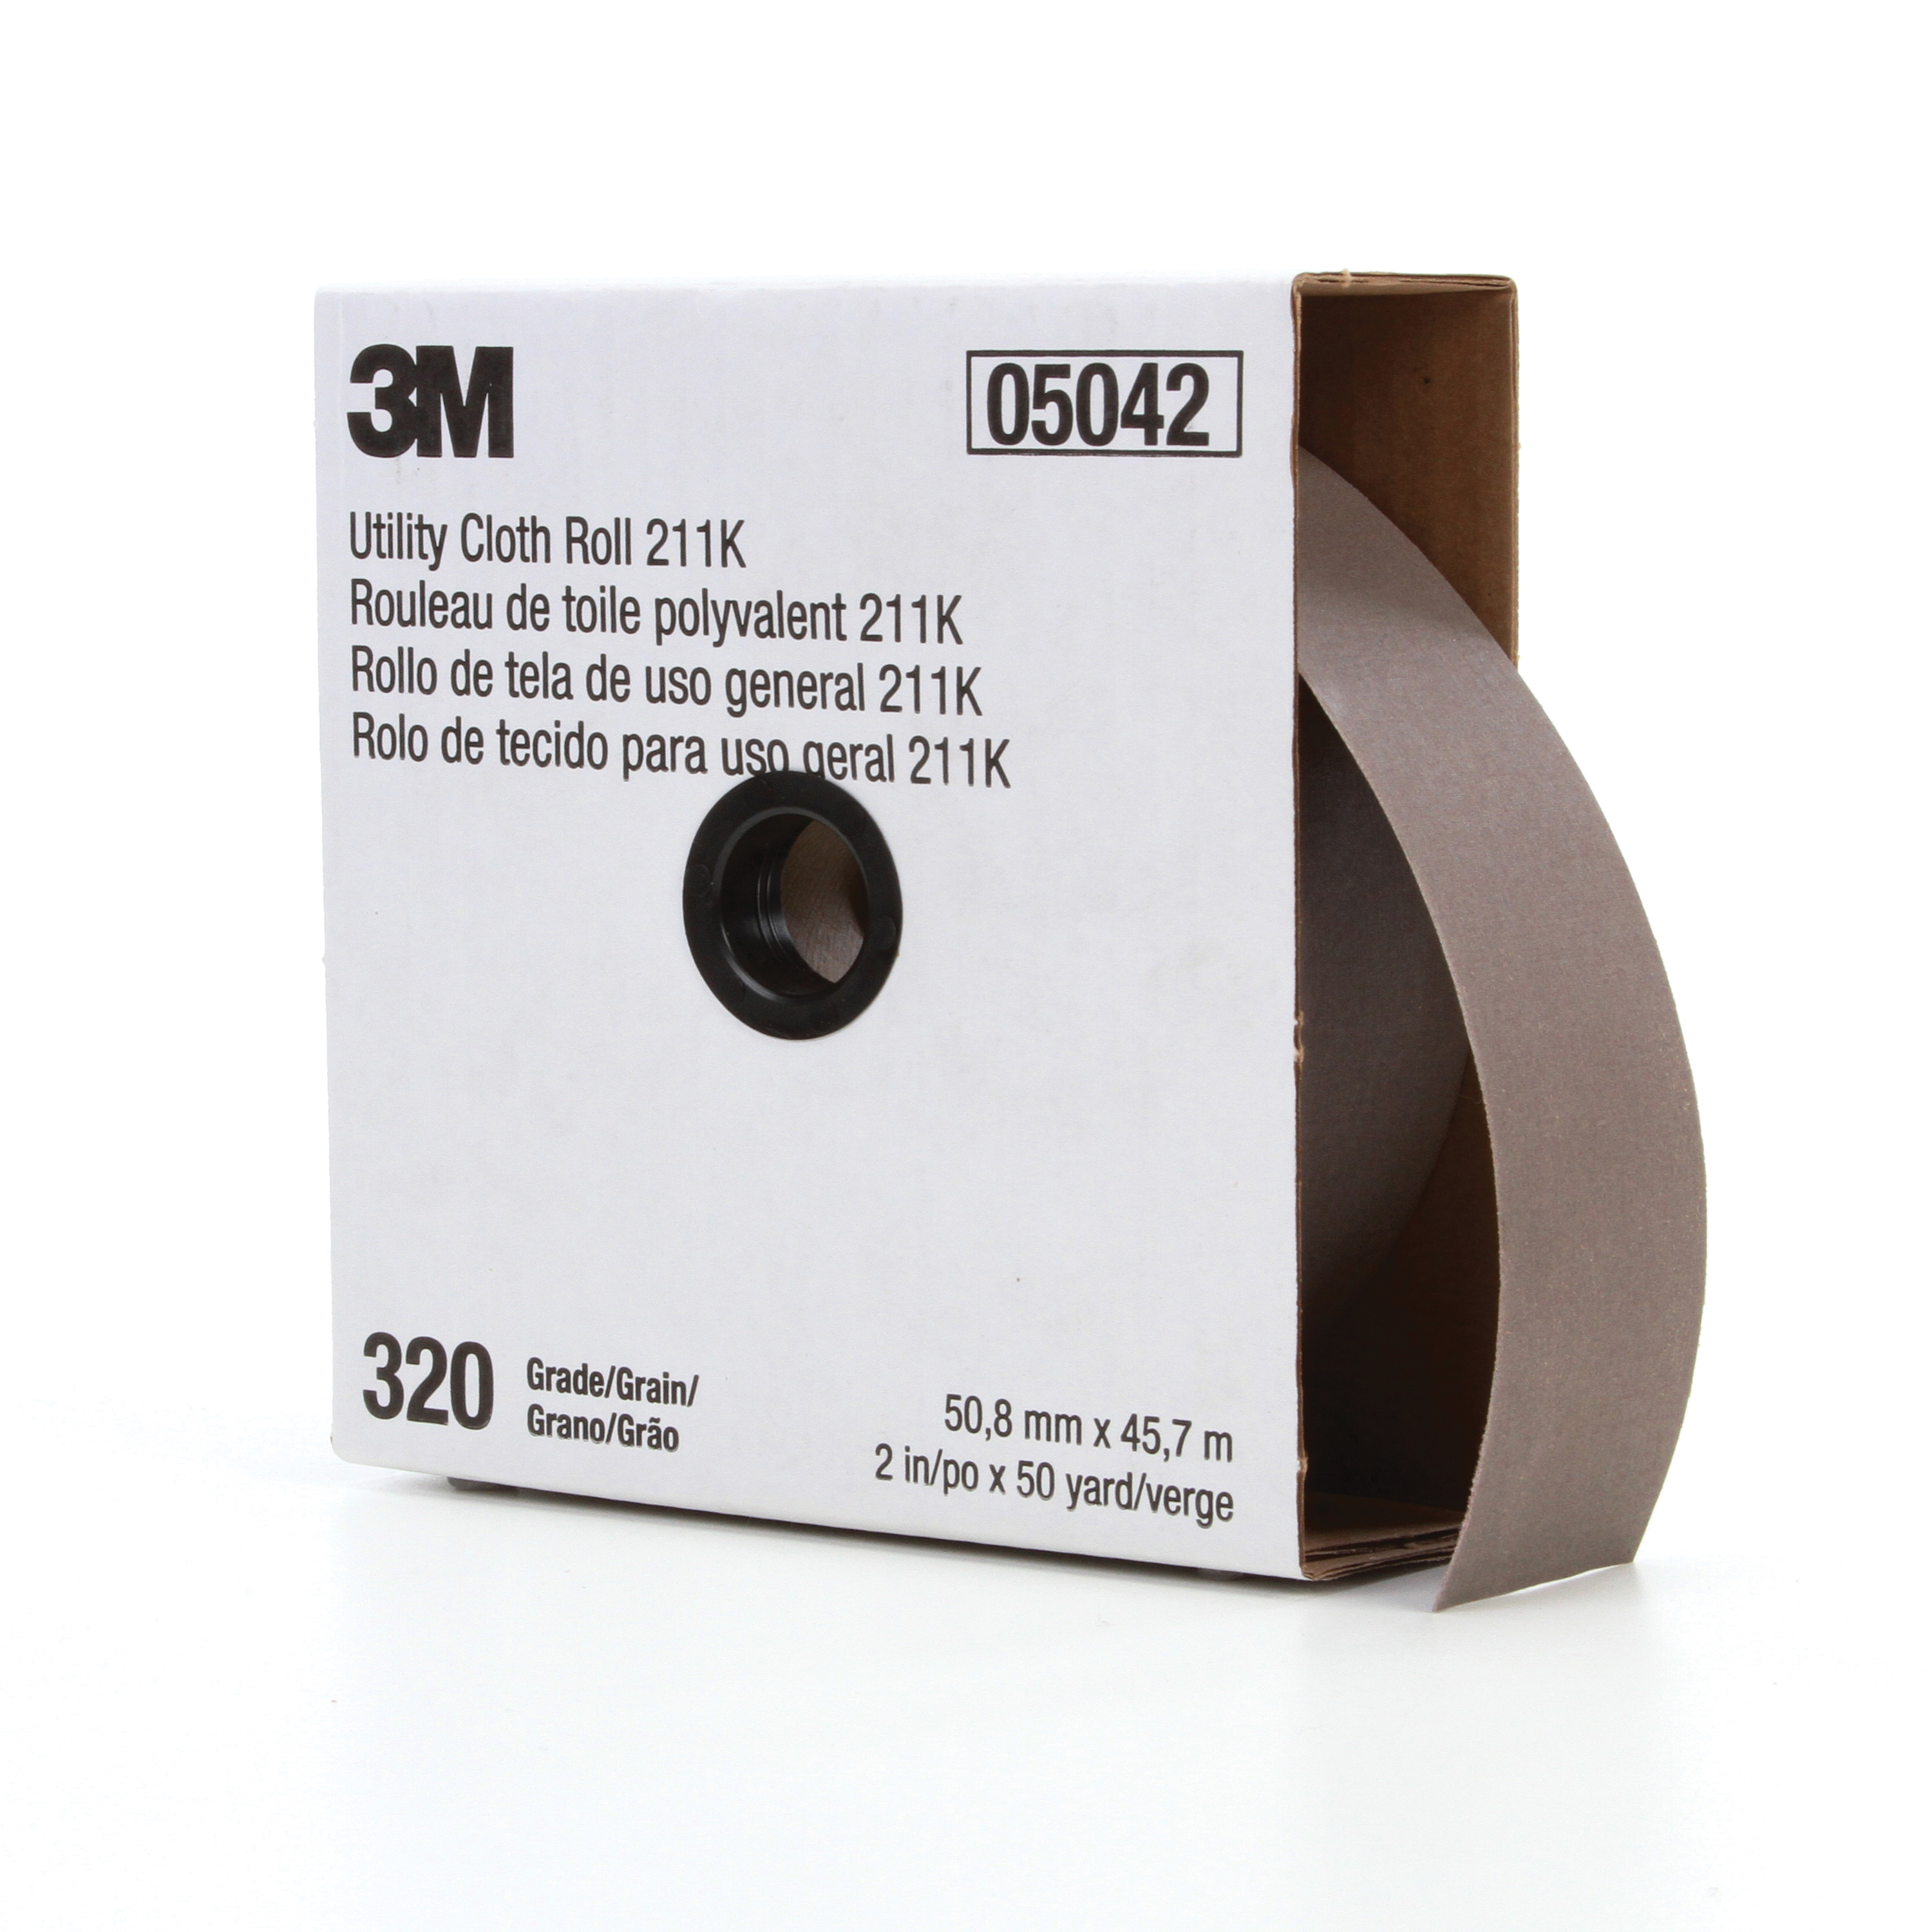 3M™ 051144-05042 Utility Cloth Roll, 2 in W x 50 yd L, 320 Grit, Extra Fine Grade, Aluminum Oxide Abrasive, Cloth Backing